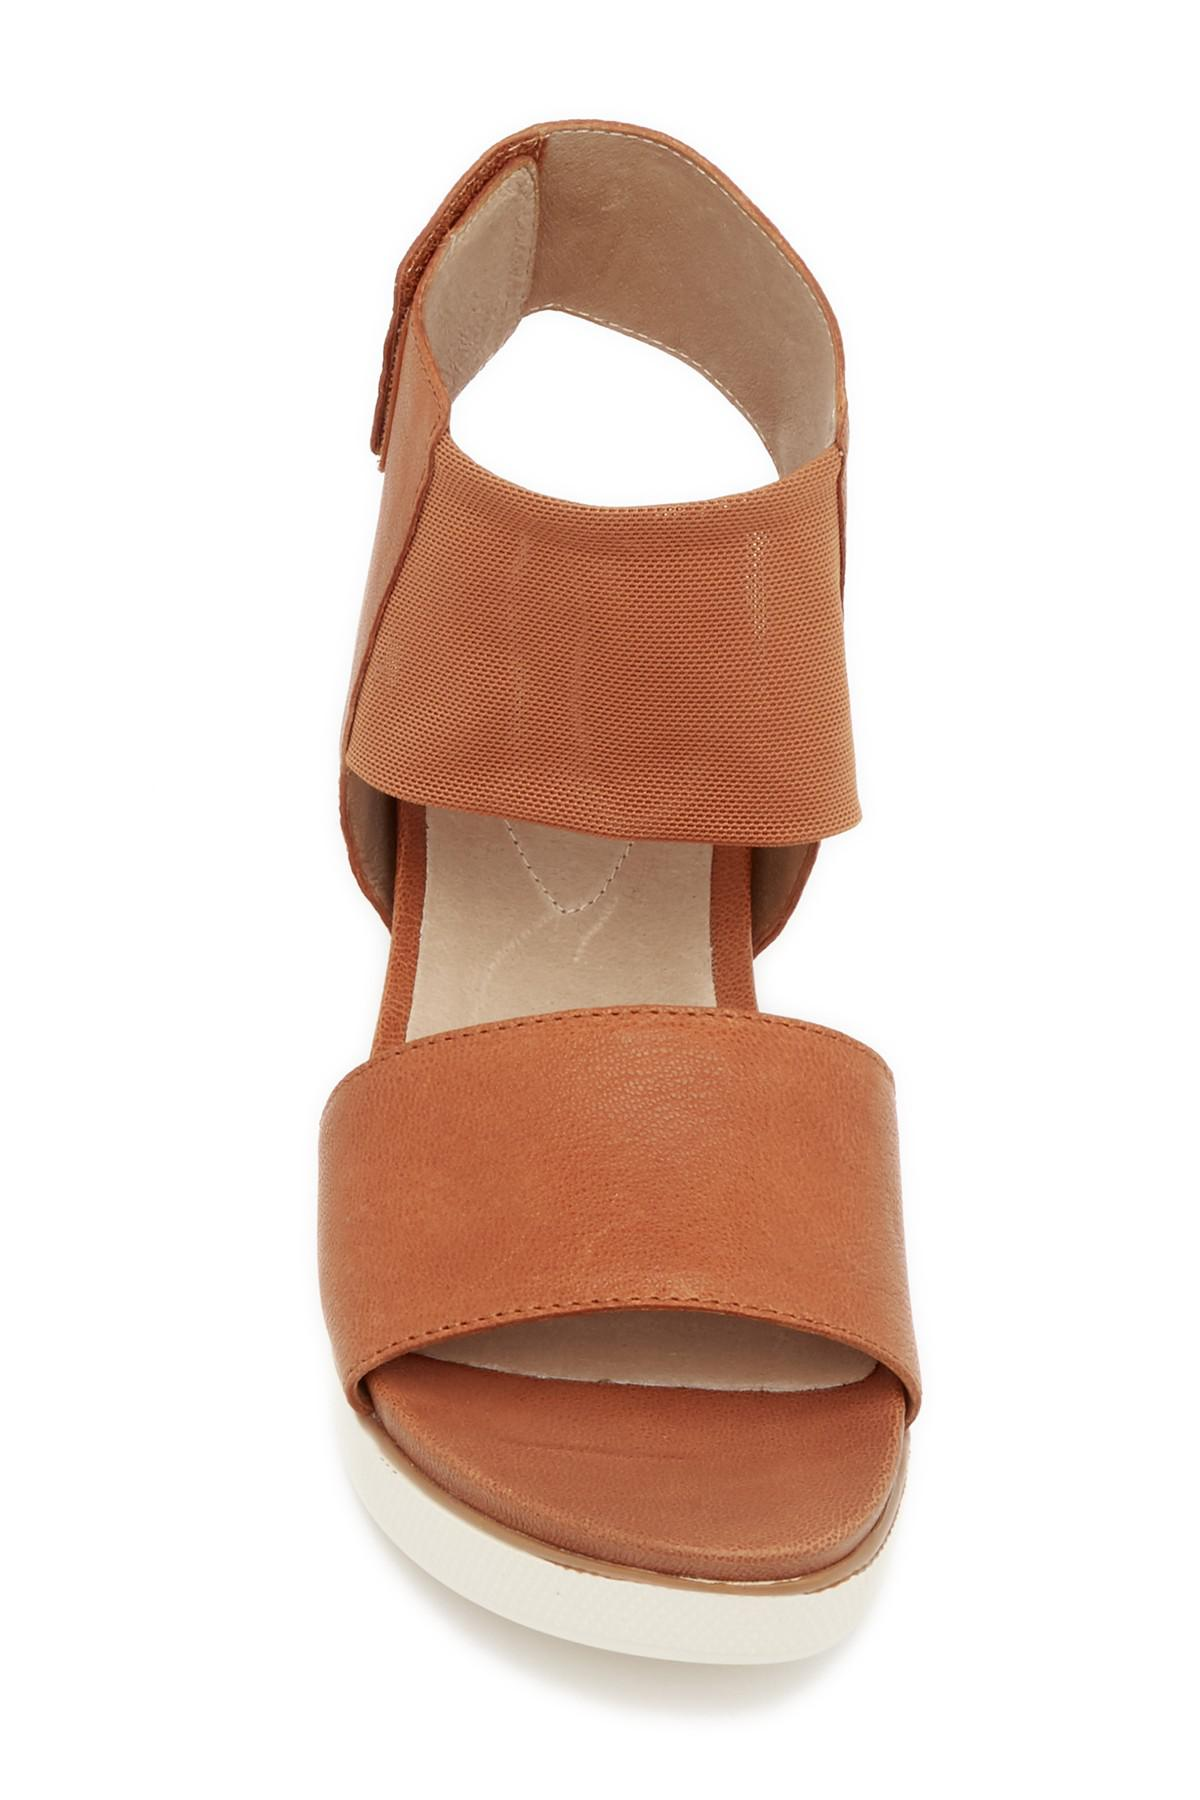 1d908160df54 Gallery. Previously sold at  Nordstrom Rack · Women s Eileen Fisher Platform  ...